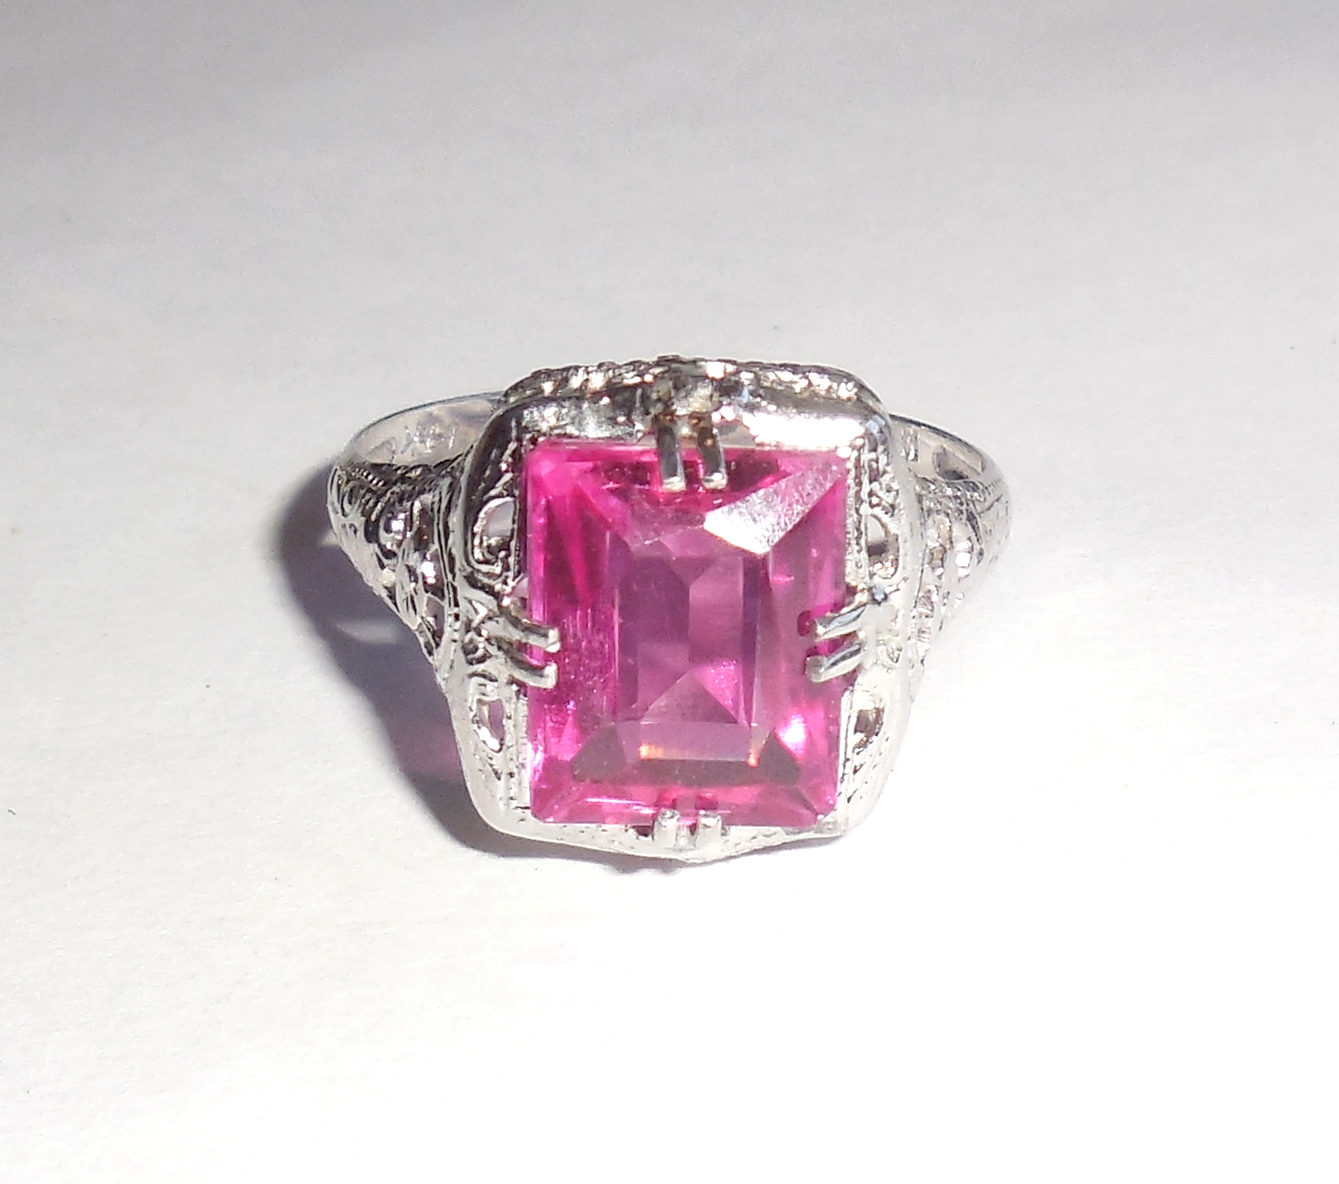 Vintage Art Deco 14K White Gold Fancy Filigree Rubellite Pink ...